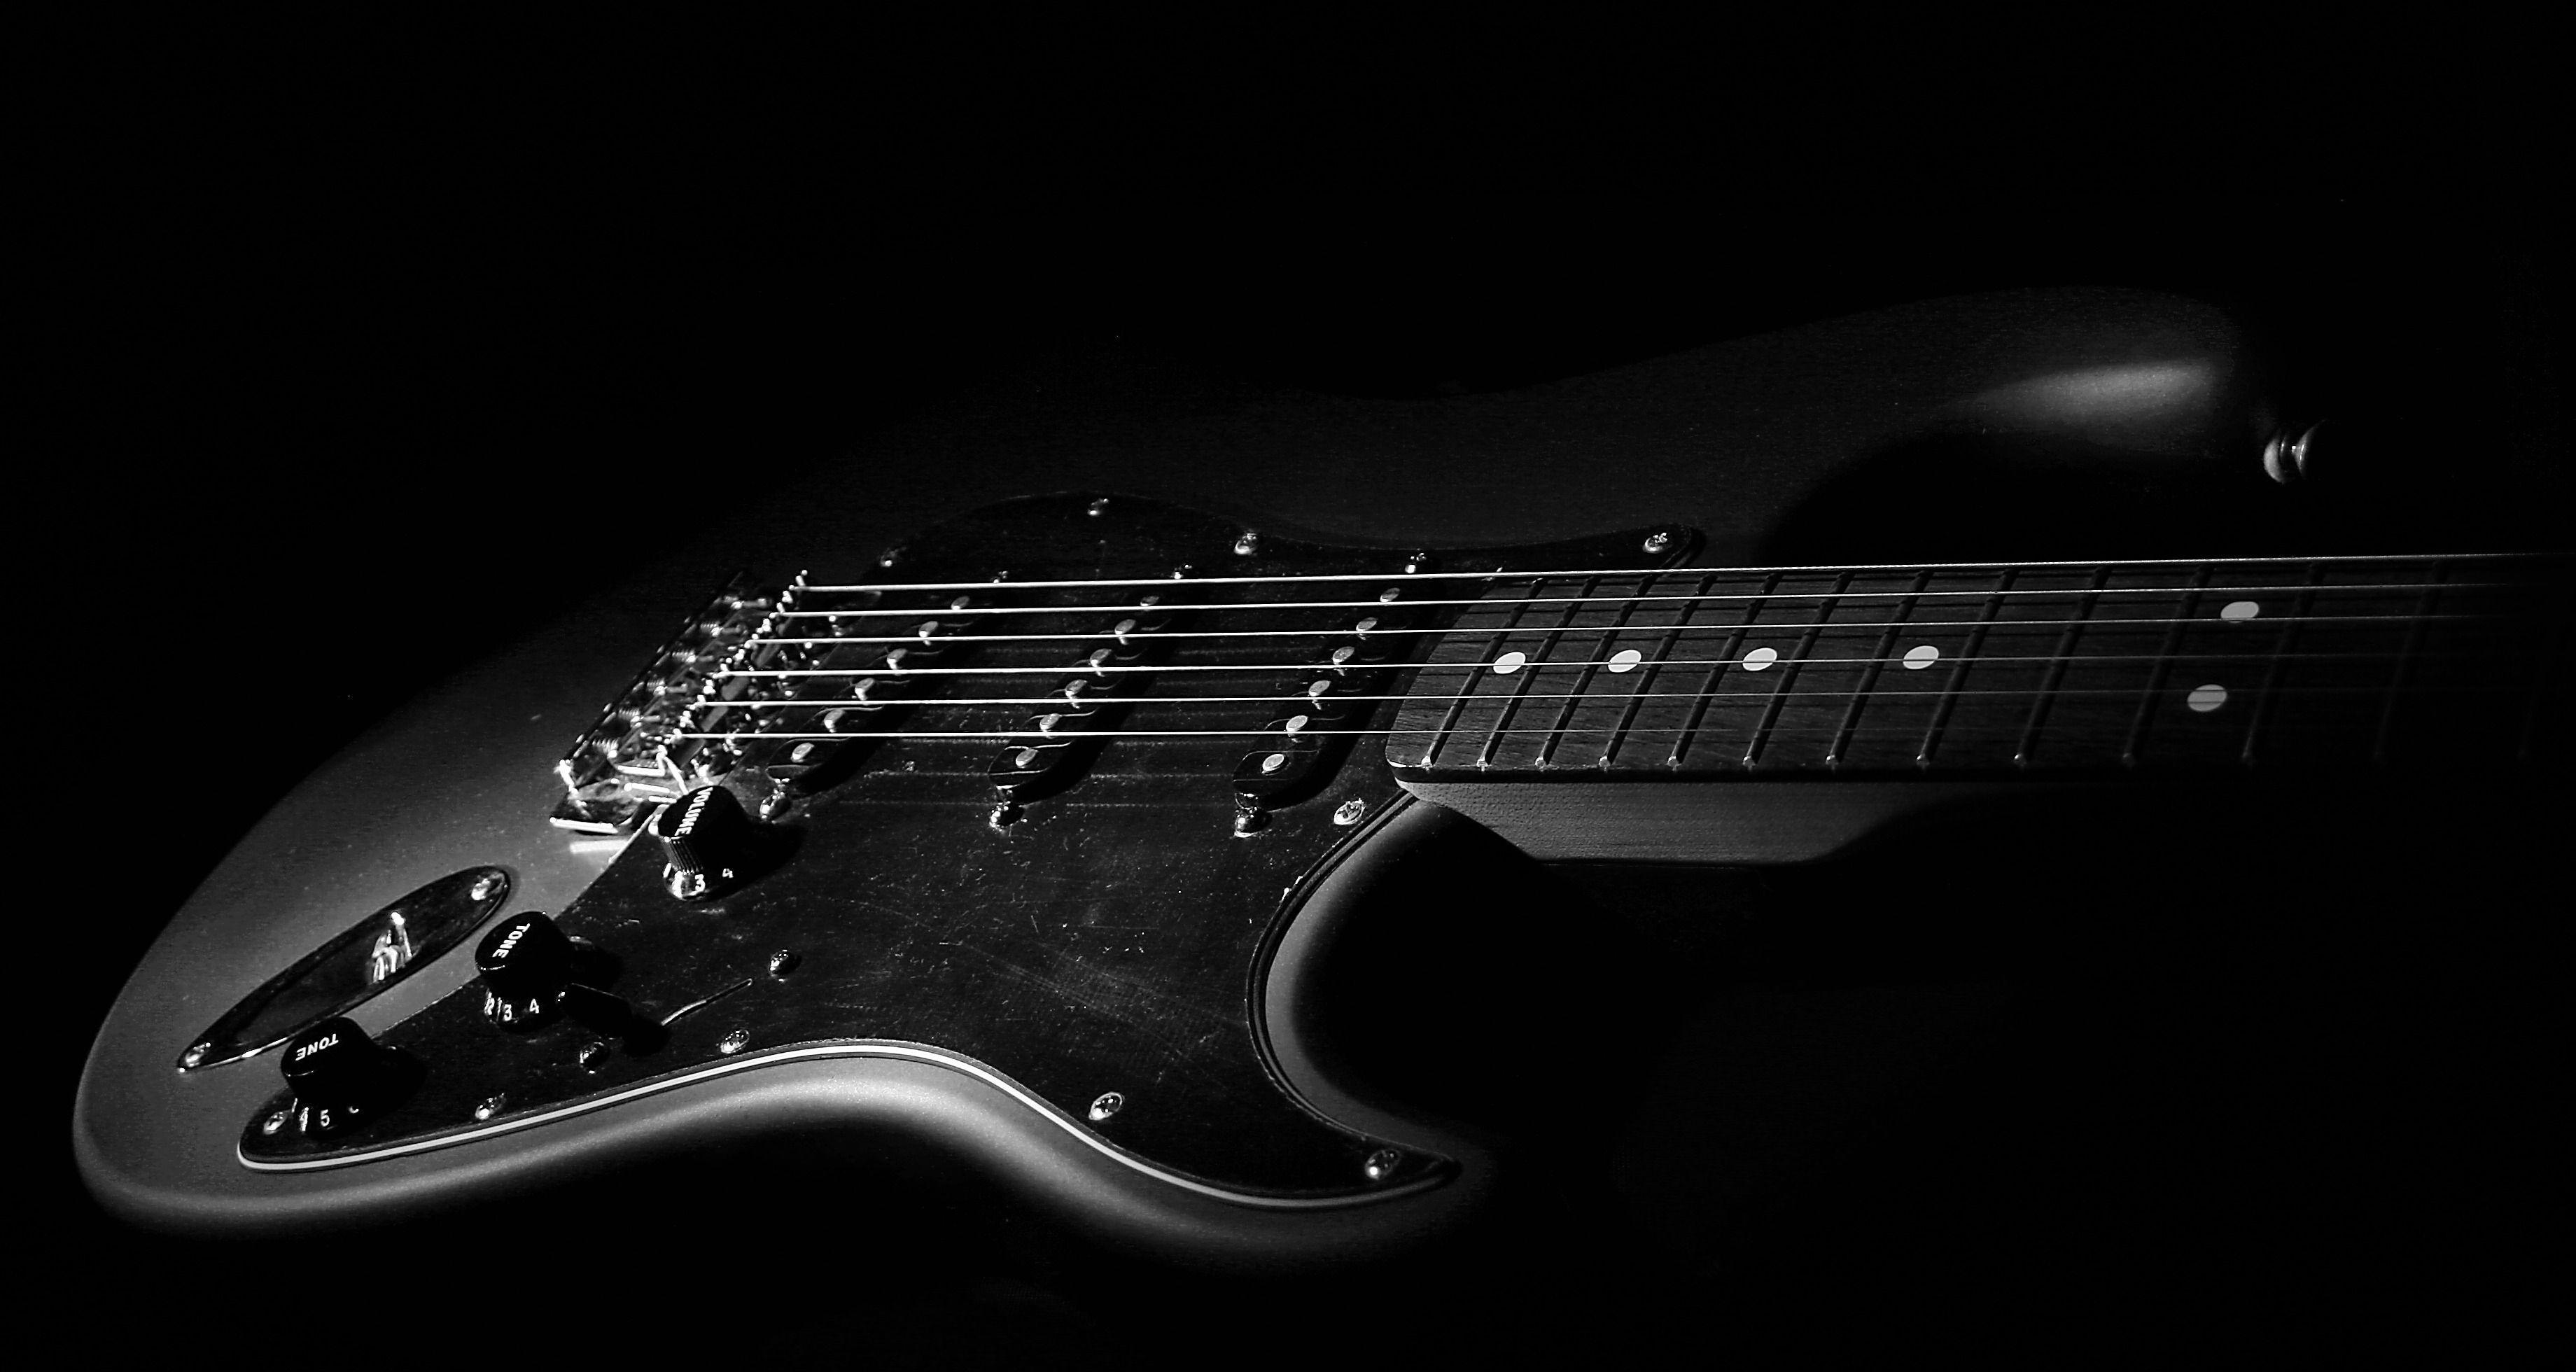 fender stratocaster wallpaper desktop